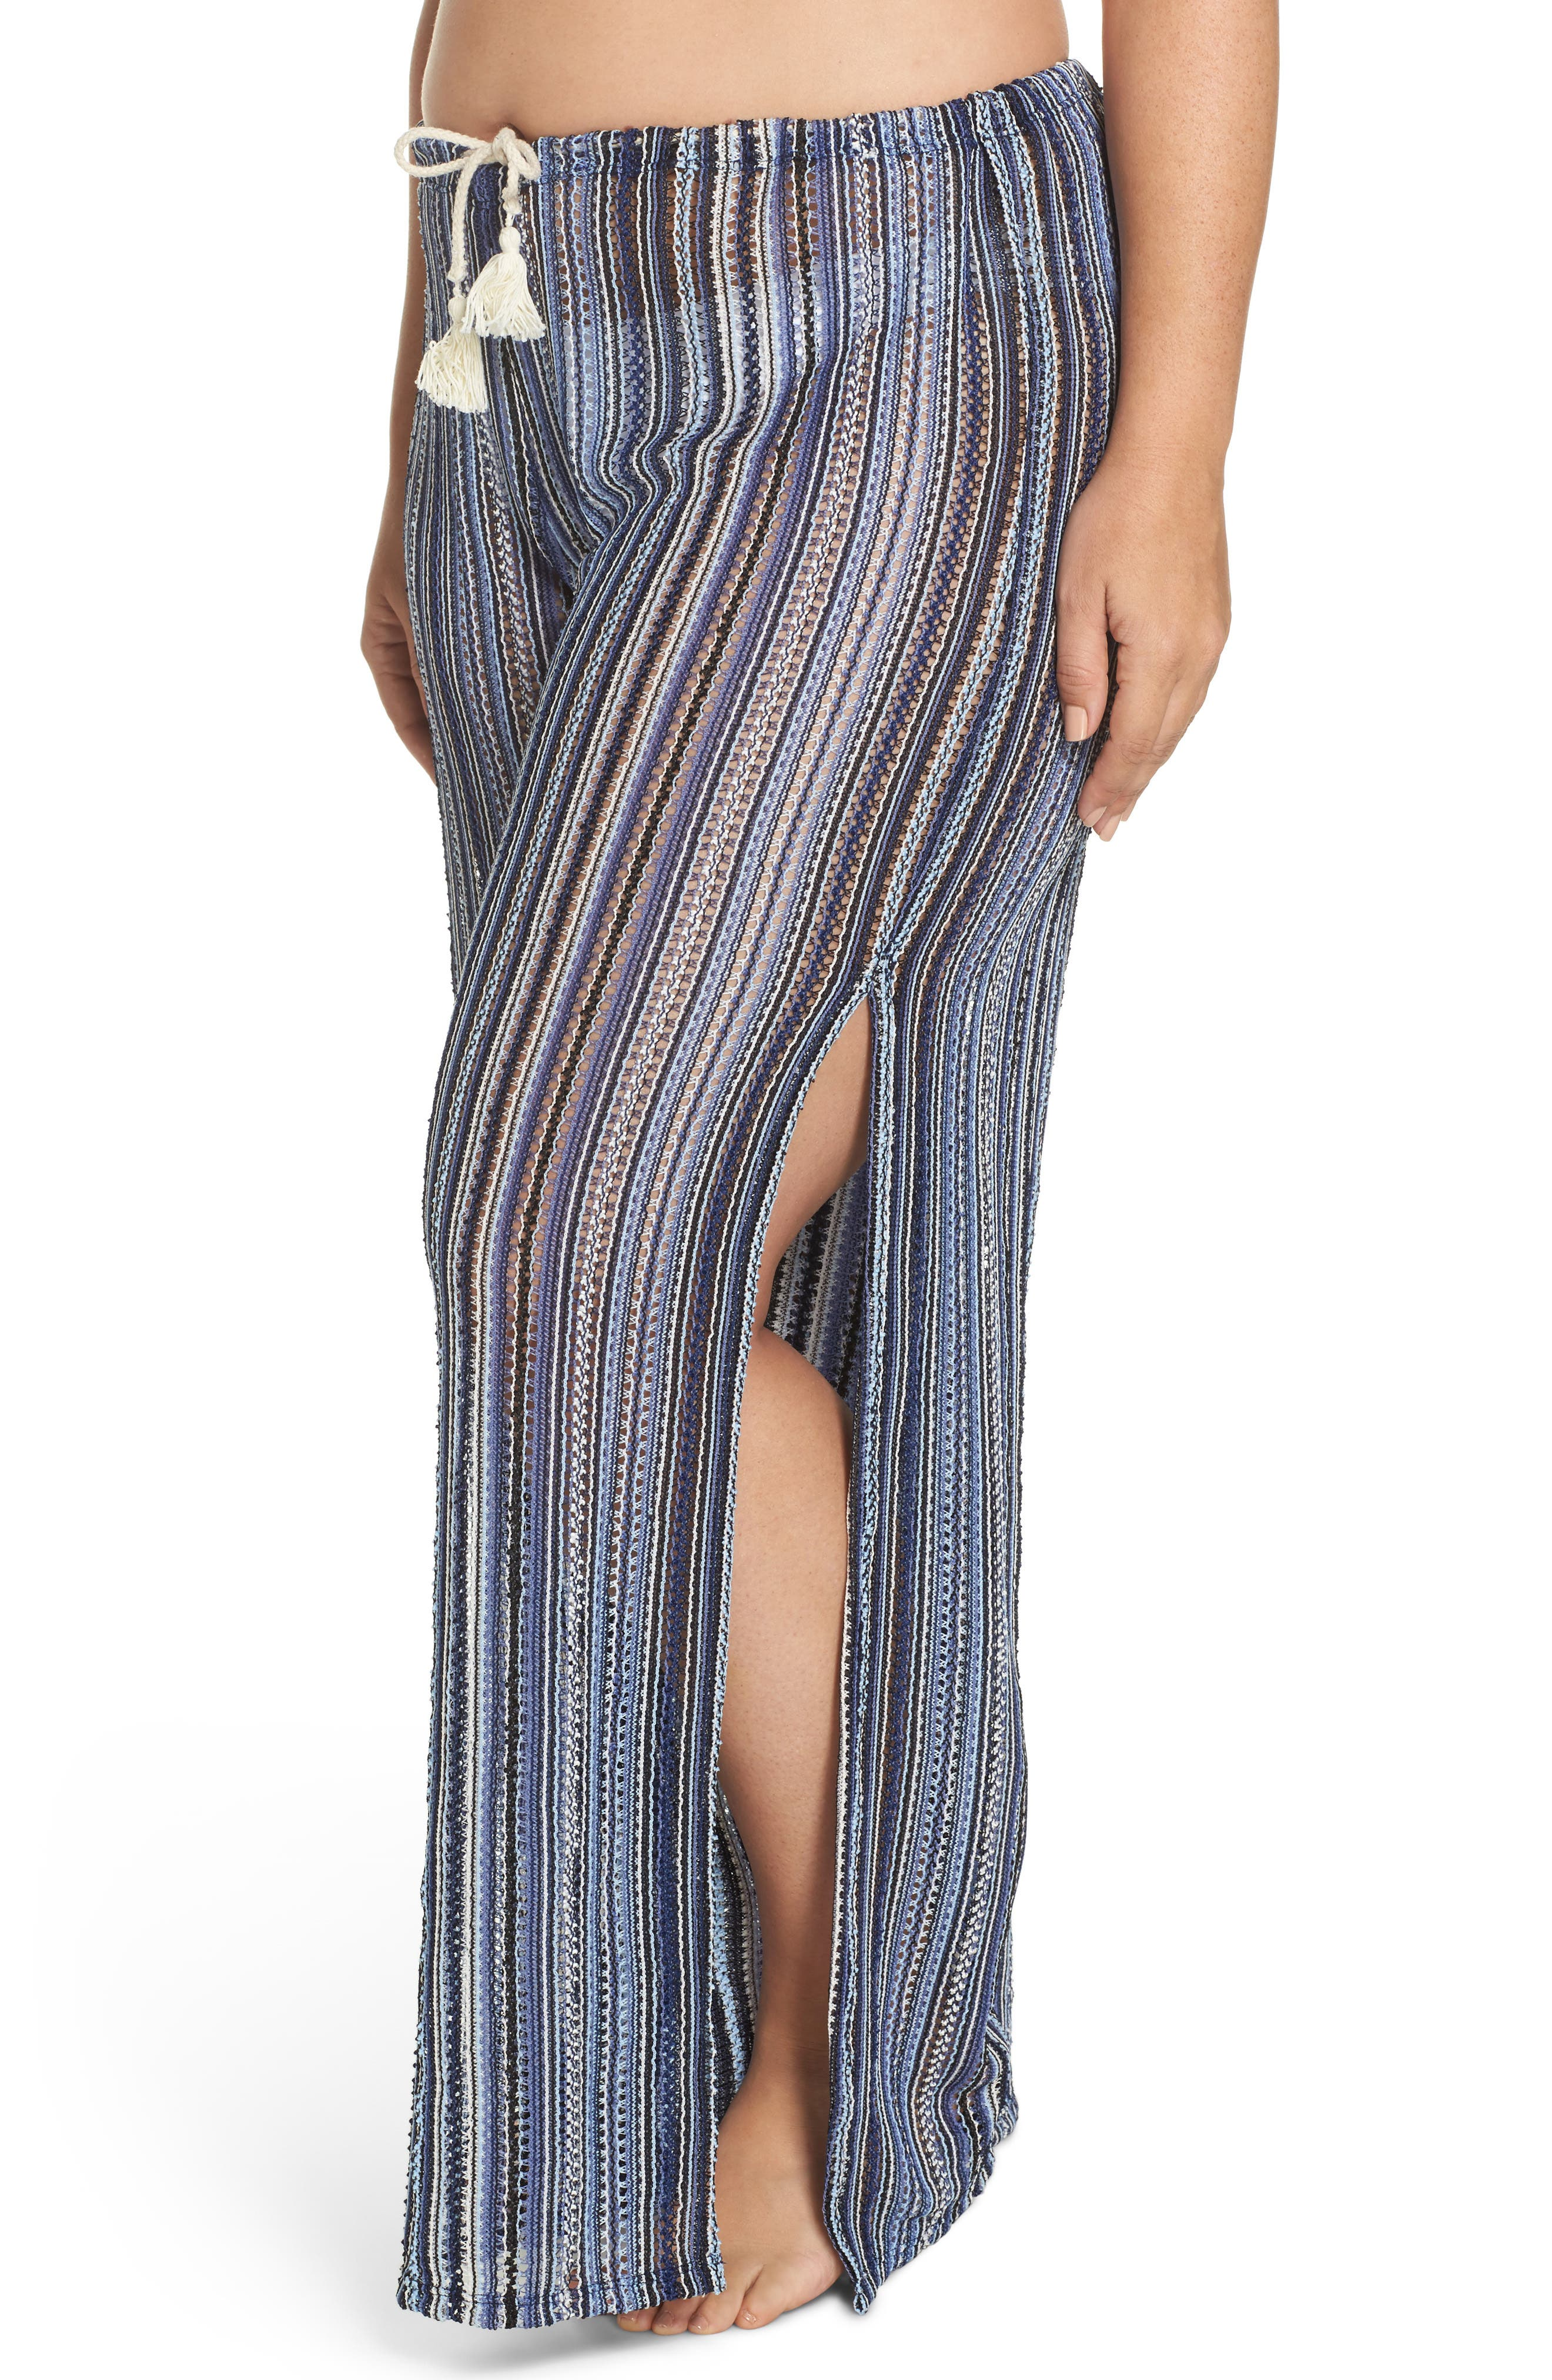 Pierside Cover-Up Flyaway Pants,                             Alternate thumbnail 4, color,                             Black Multi